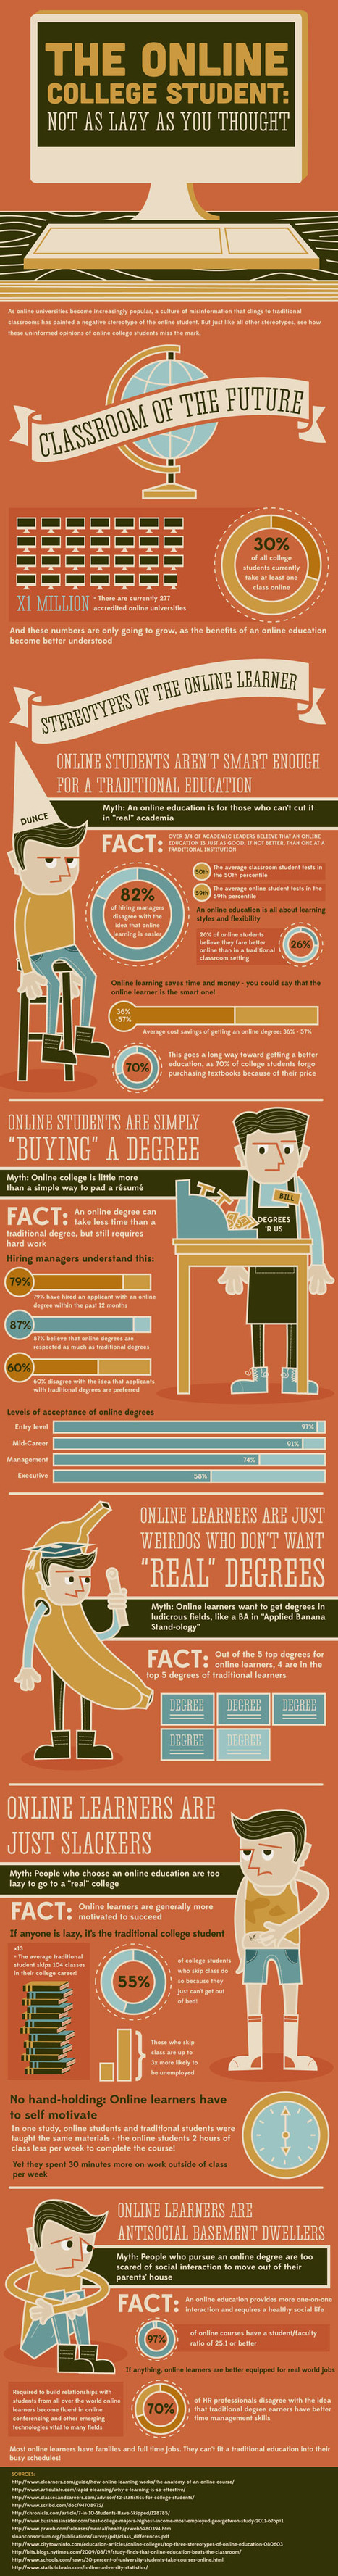 Do you have the wrong impression about online learning? [Infographic] | Learning & Mind & Brain | Scoop.it